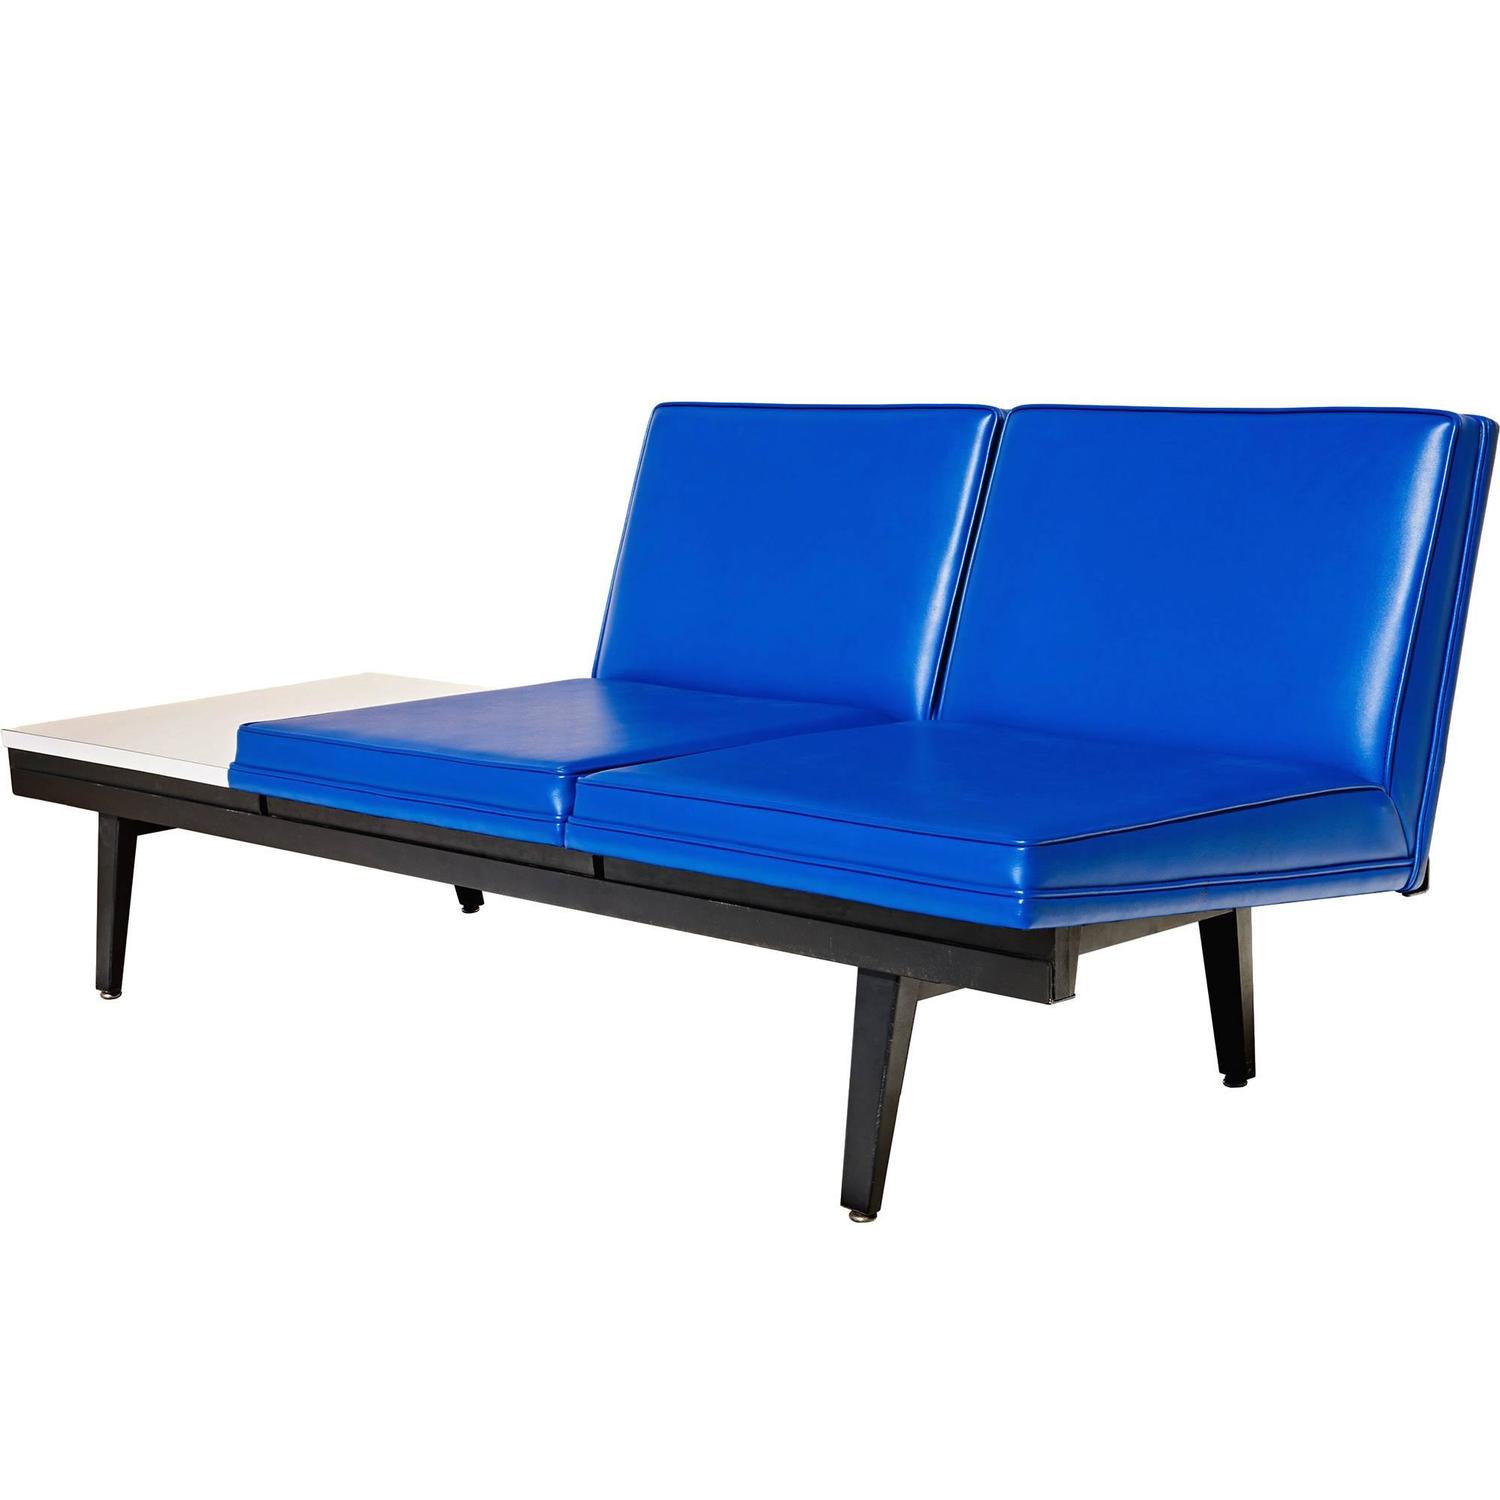 "Steel Frame"" Sofa by George Nelson For Sale at 1stdibs"